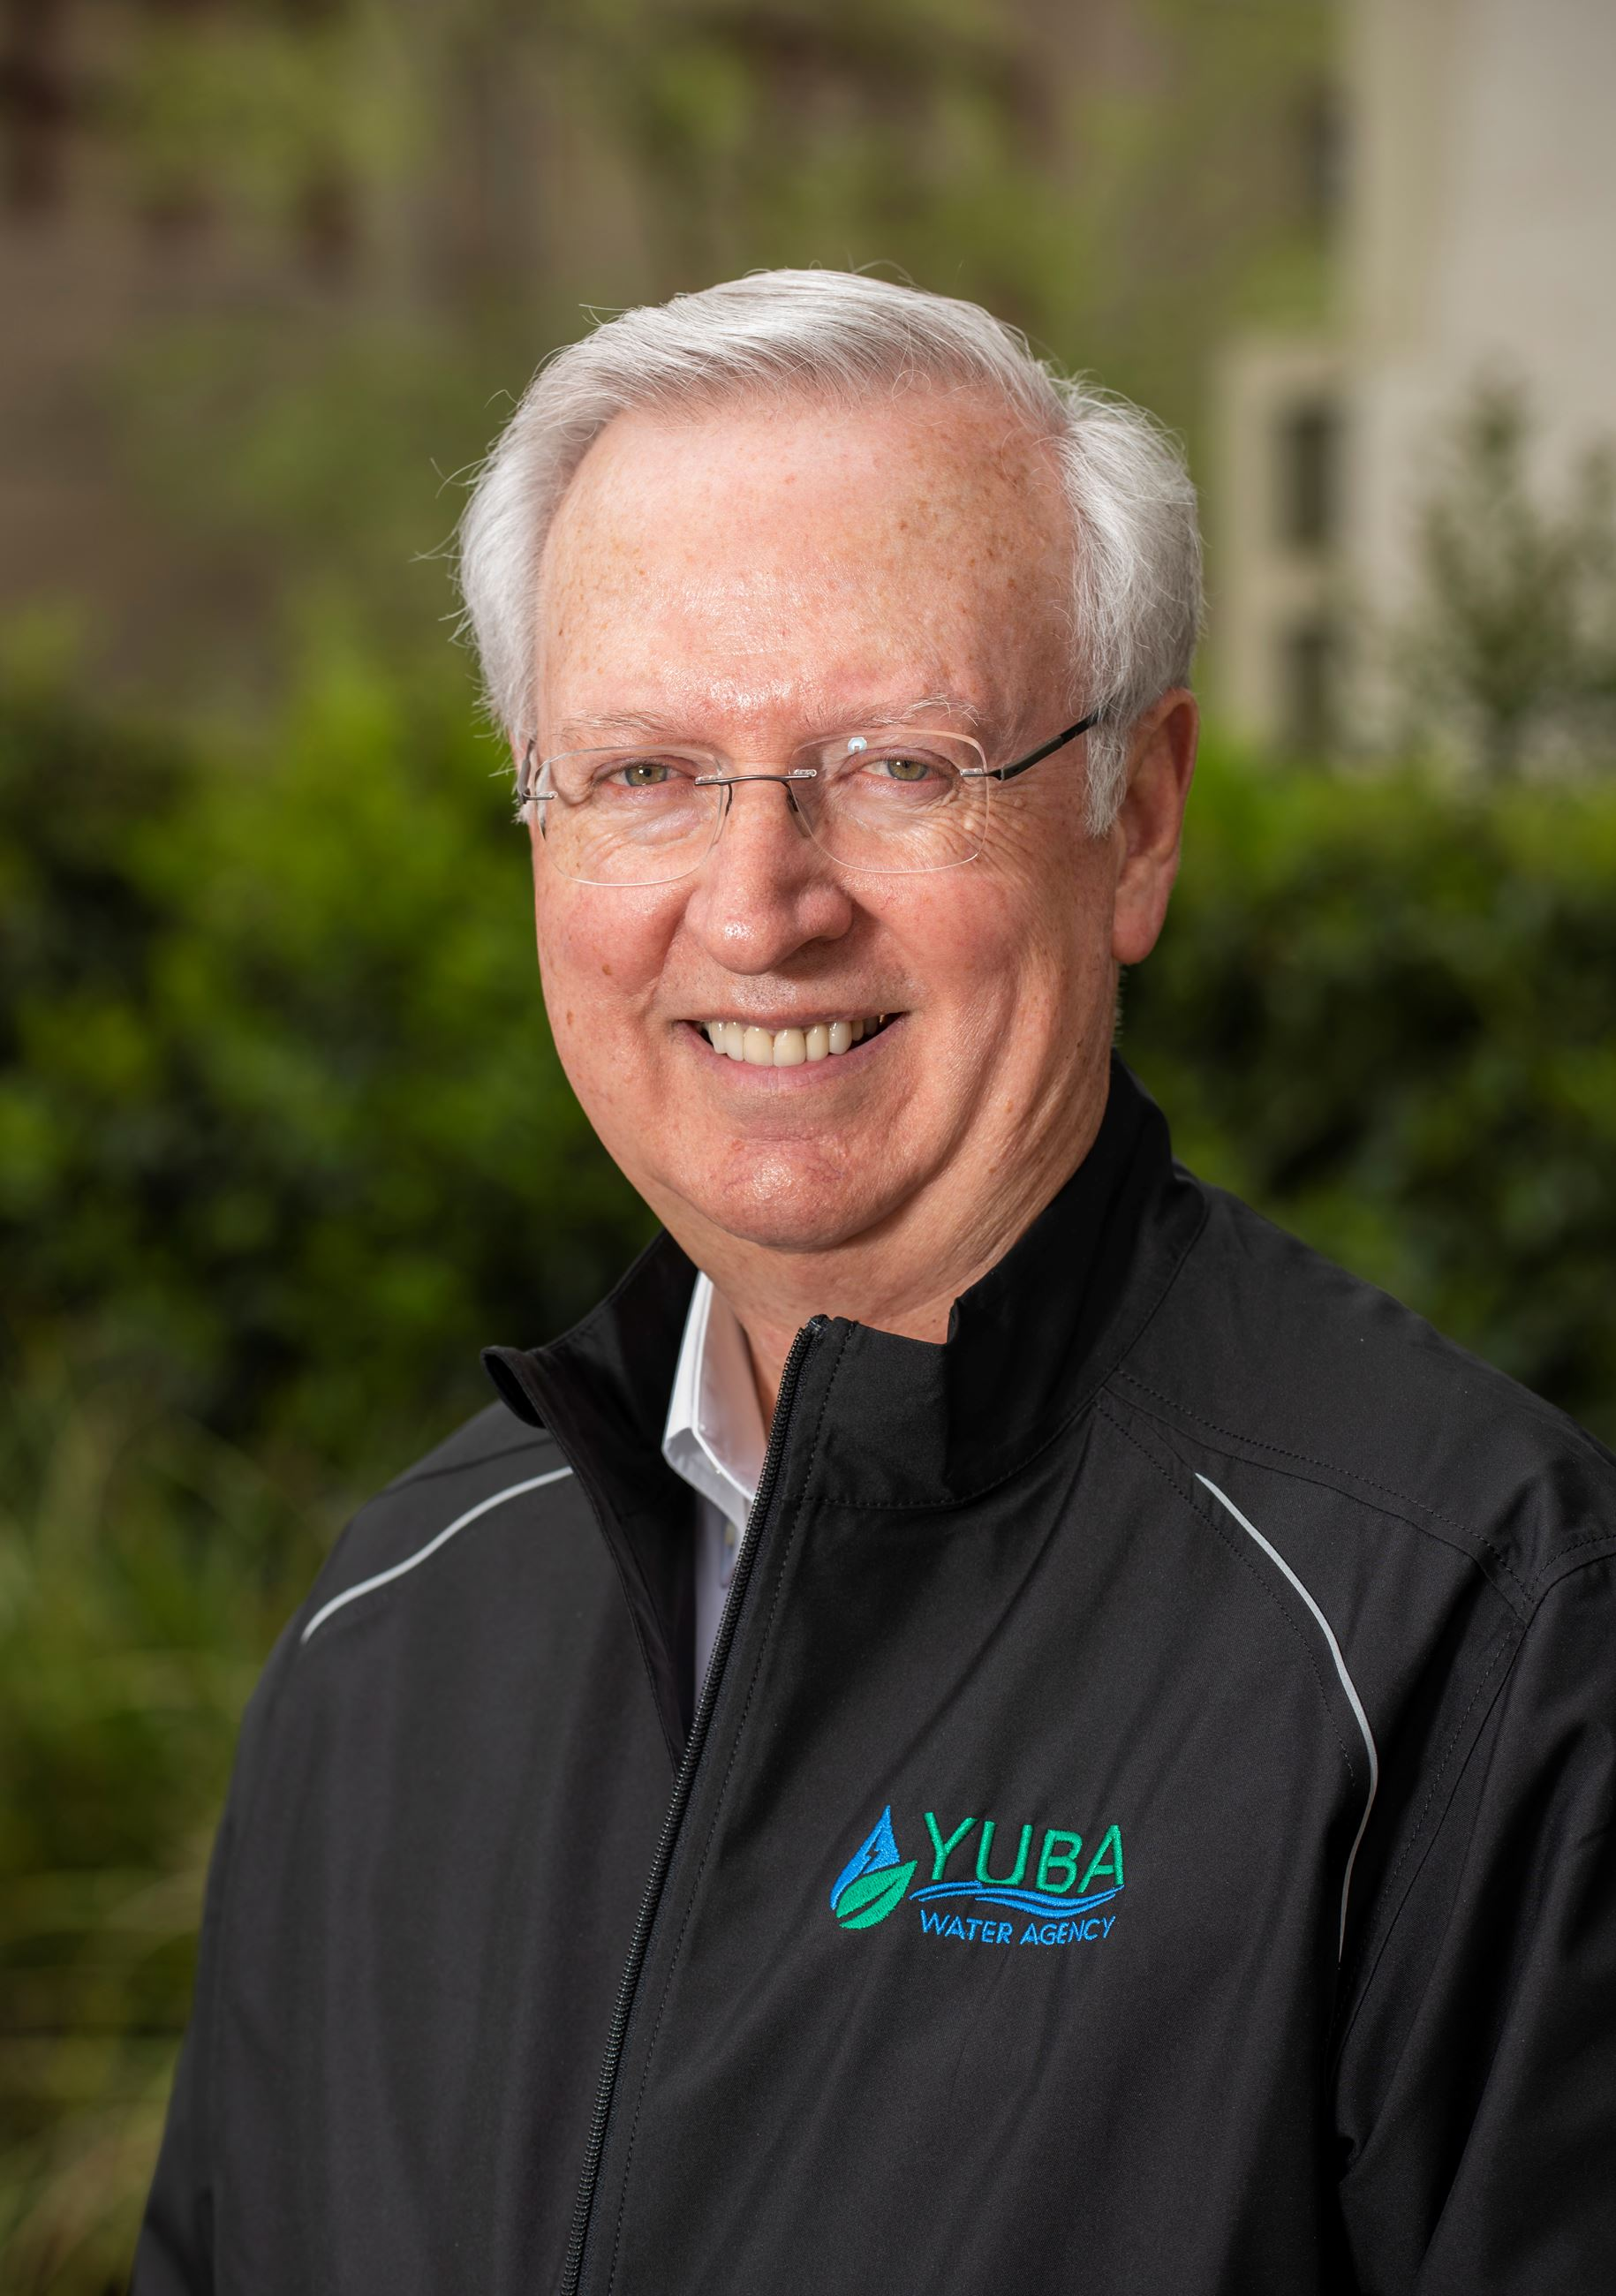 Yuba Water Agency Director Randy Fletcher